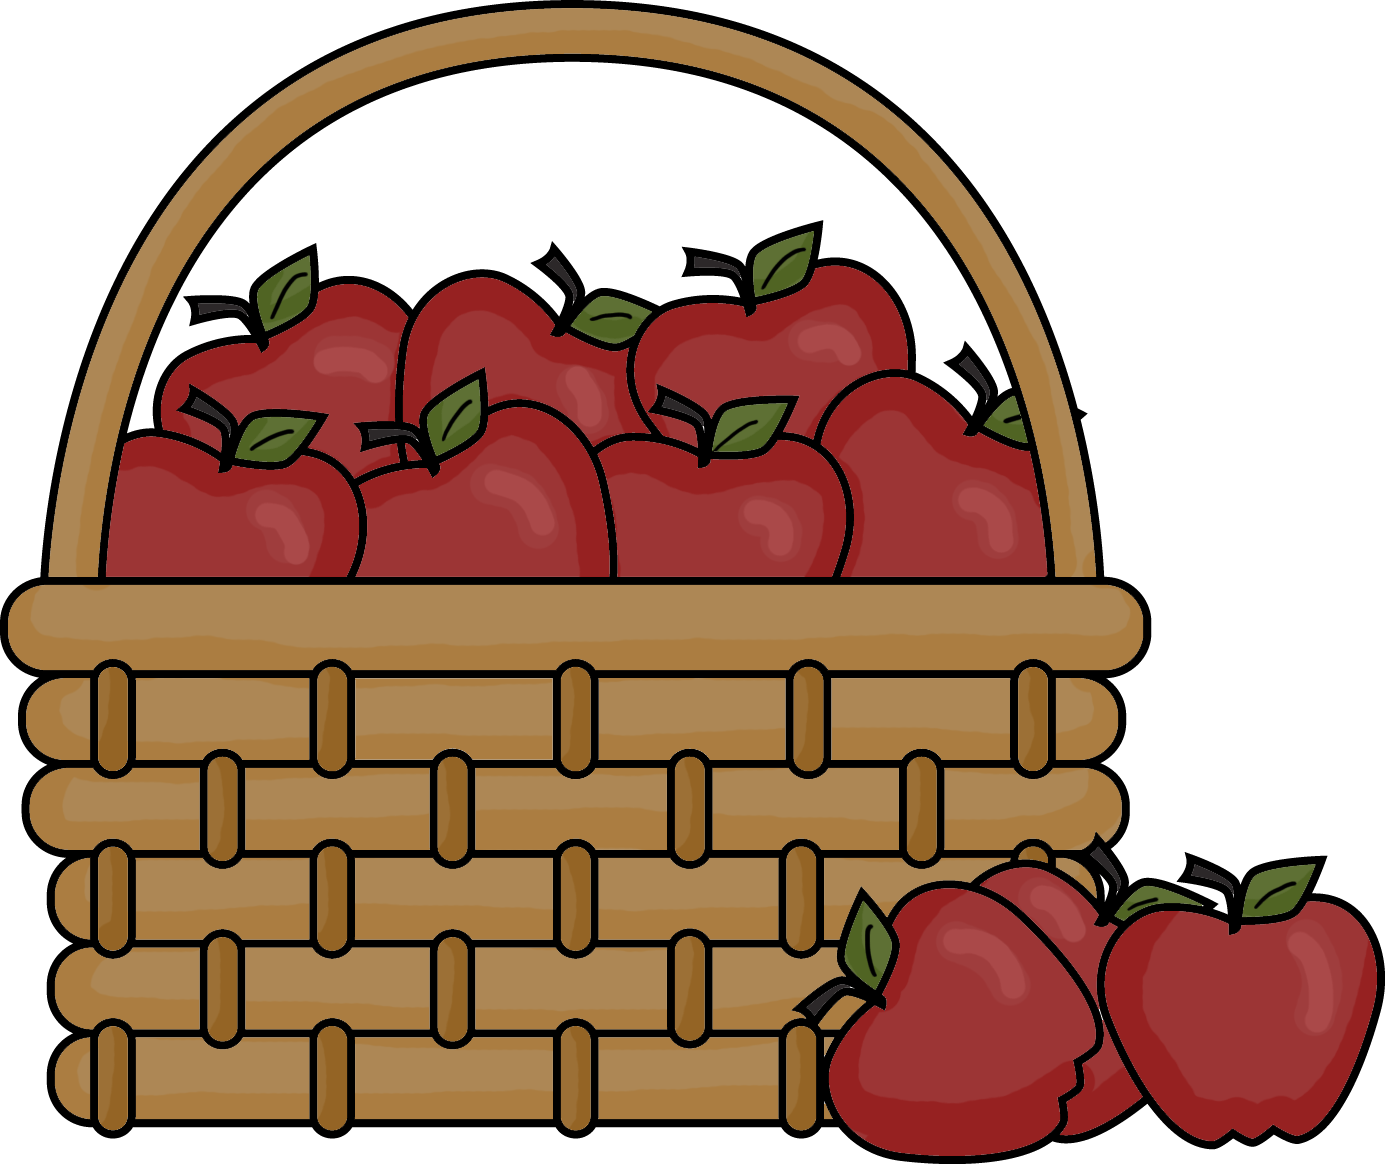 Apple clipart background clipart royalty free stock No Apple Cliparts - Cliparts Zone clipart royalty free stock